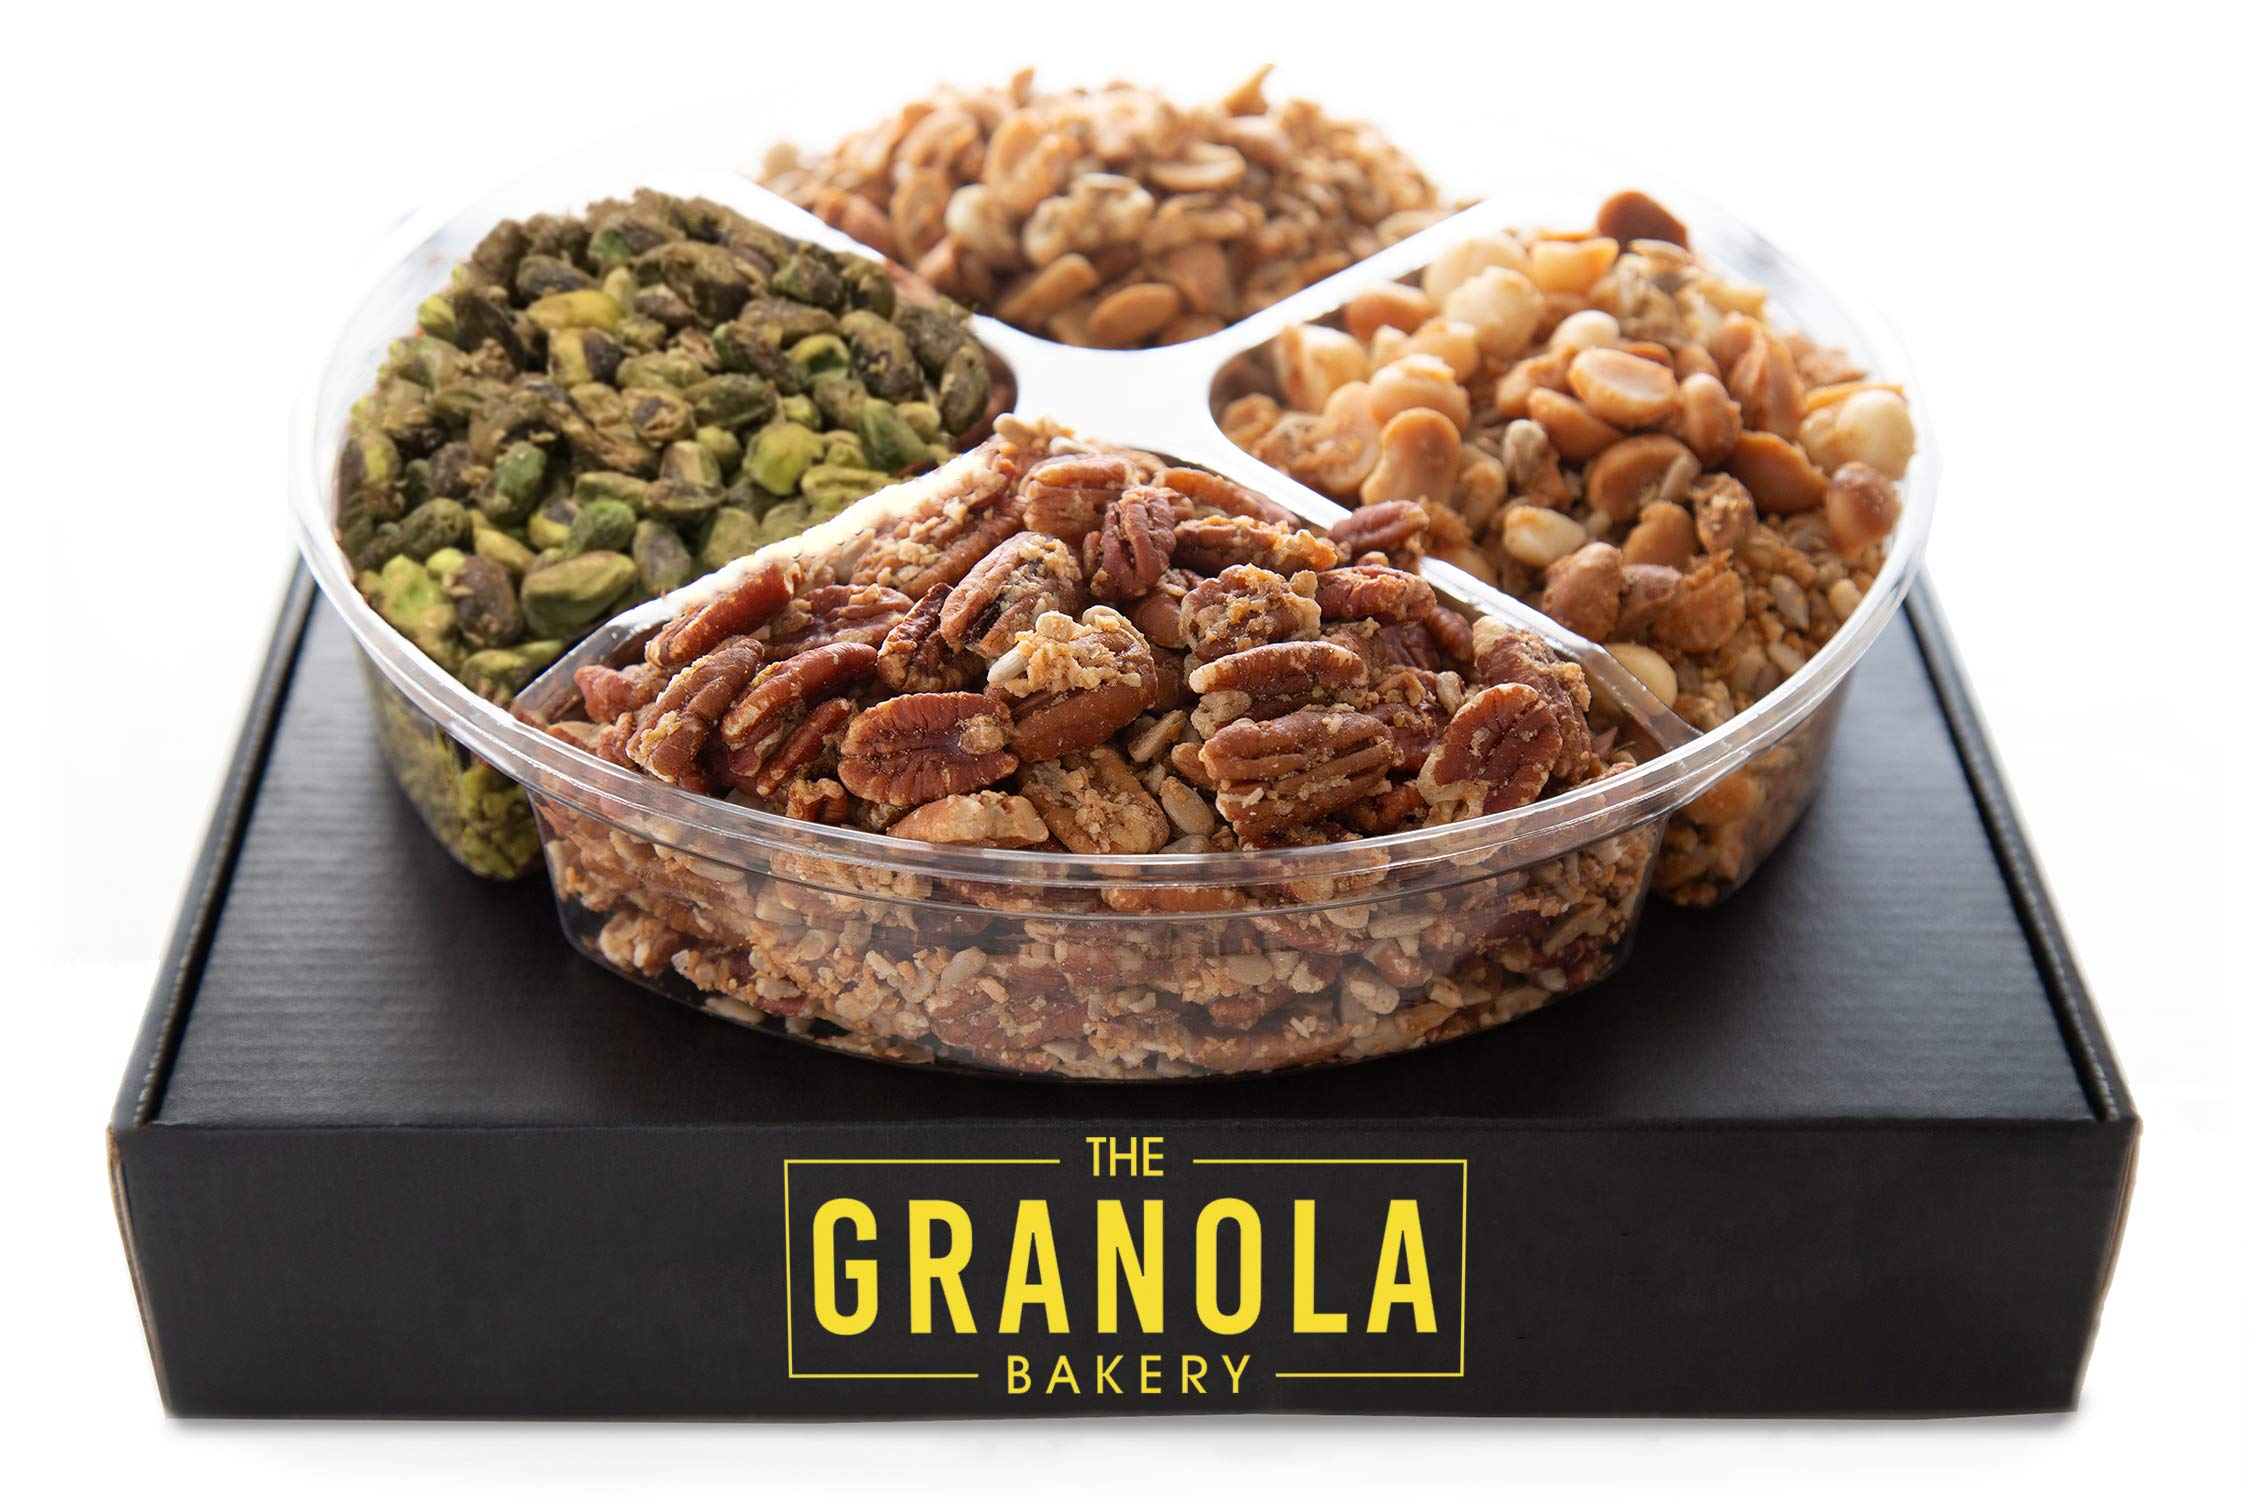 Granola Bakery - Gourmet Nut Blend Gift Box | Keto, Gluten Free, Grain Free, Vegan, Diabetic Diet Friendly Variety Nut Mix Assortment | Fresh Holiday Prime Delivery Gifts Basket (1.6lb Tray)